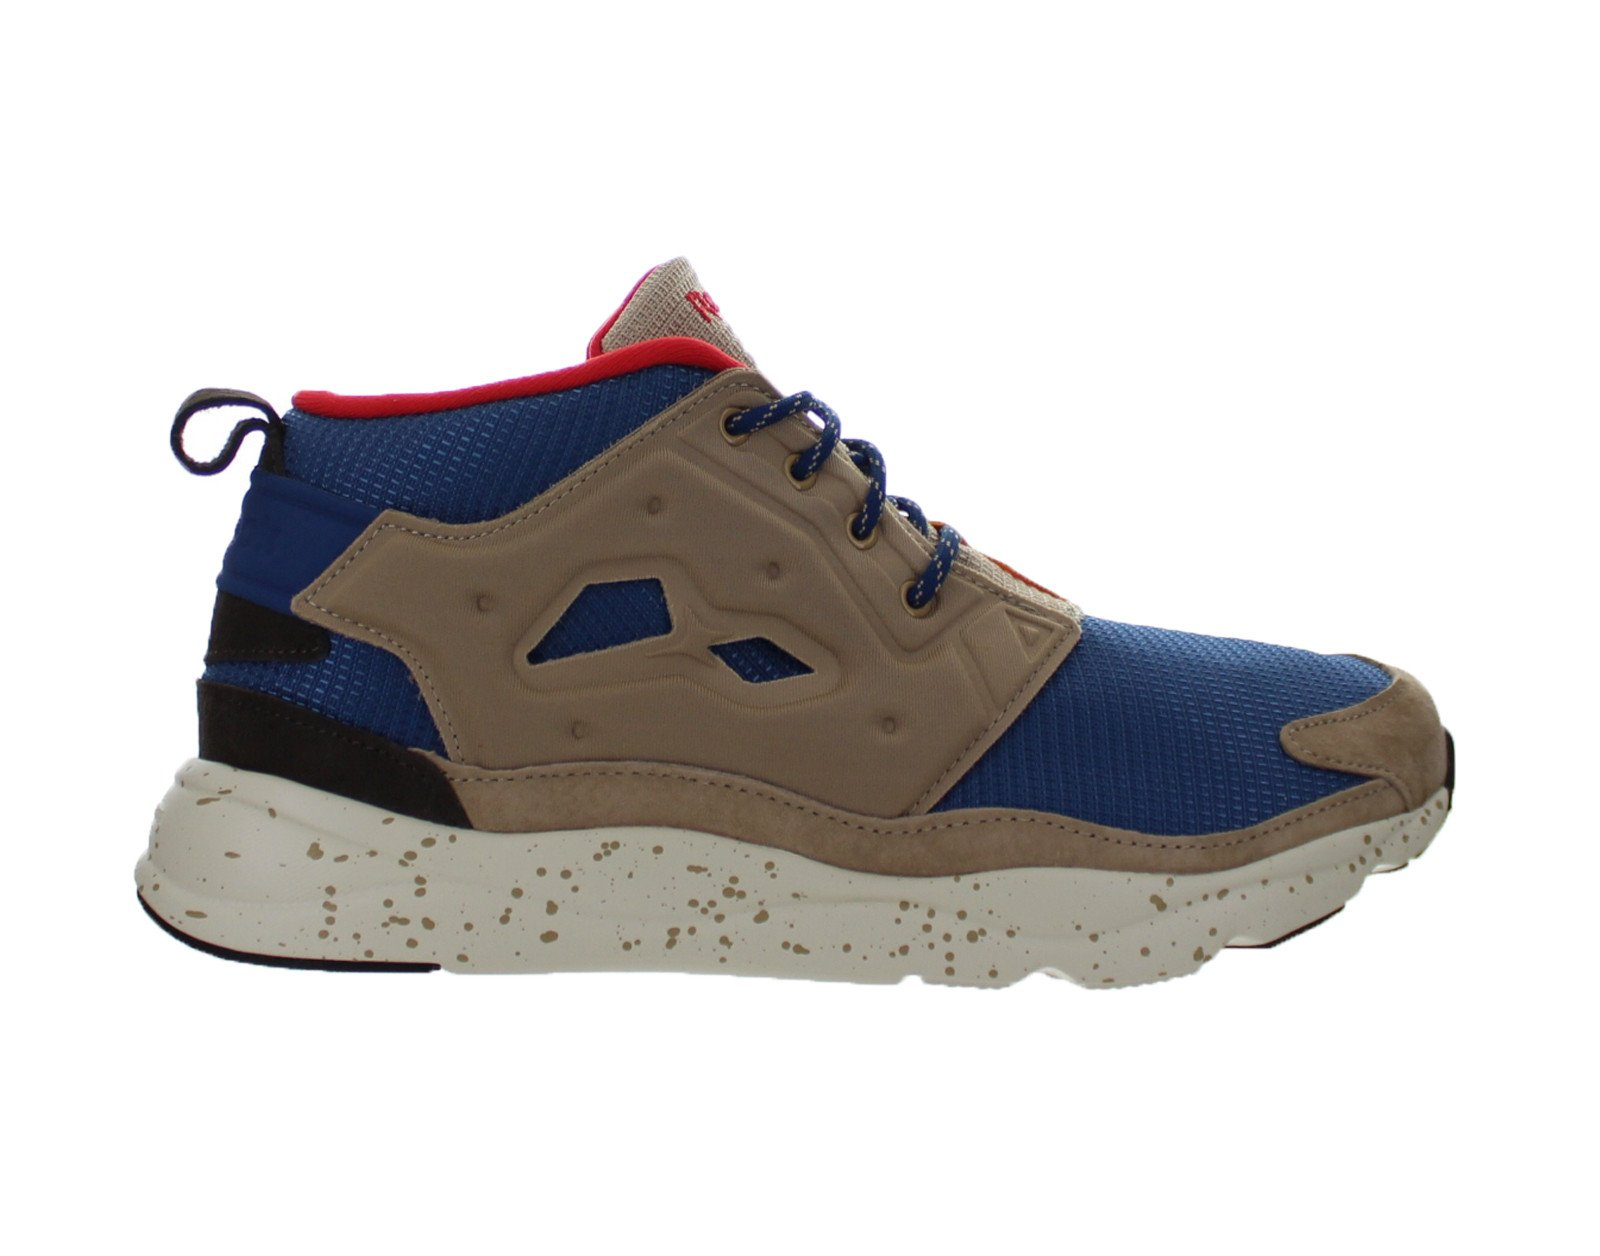 Mens Reebok Furylite Chukka Seasonal Outdoor Batik Blue Walnut Stone V by